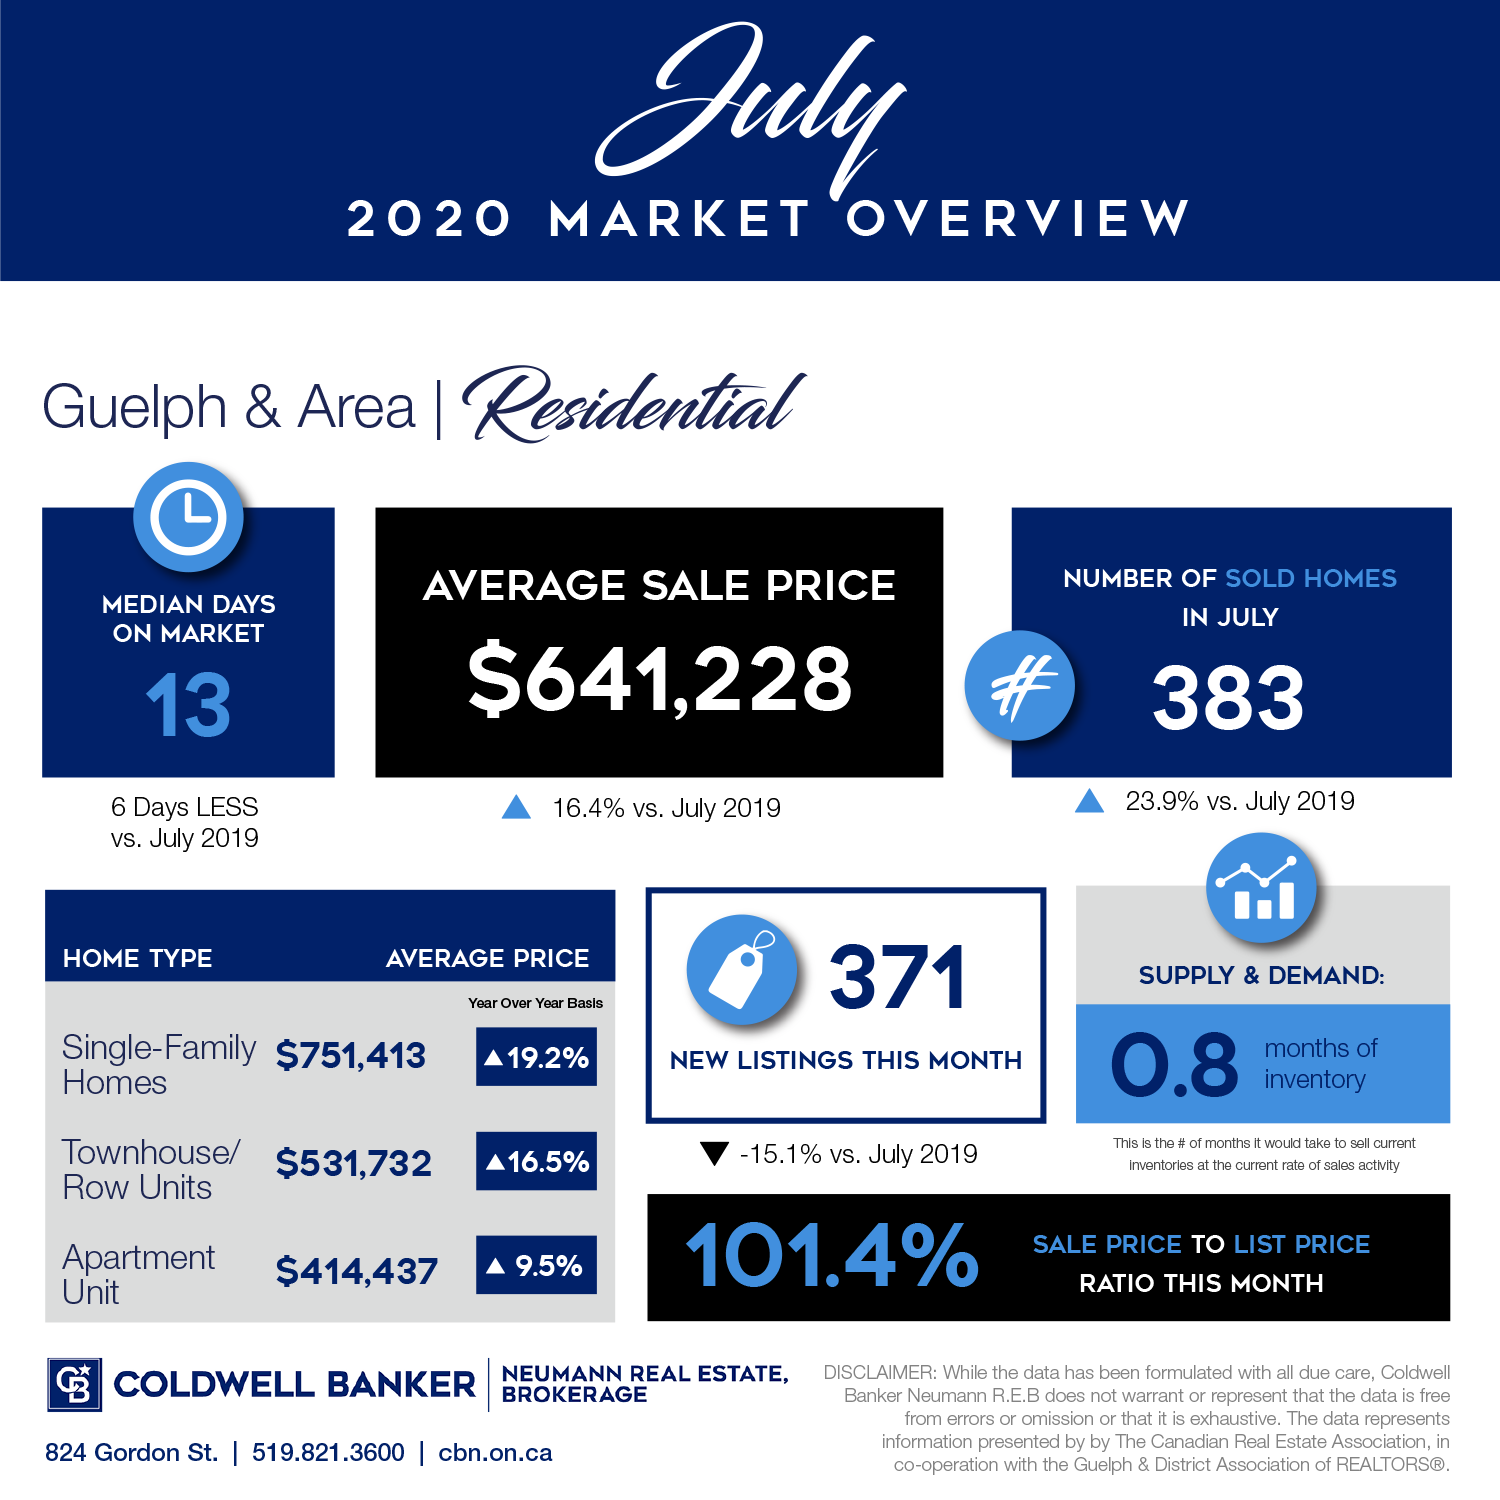 July 2020 Market report for Guelph & area from Coldwell Banker Neumann Real Estate